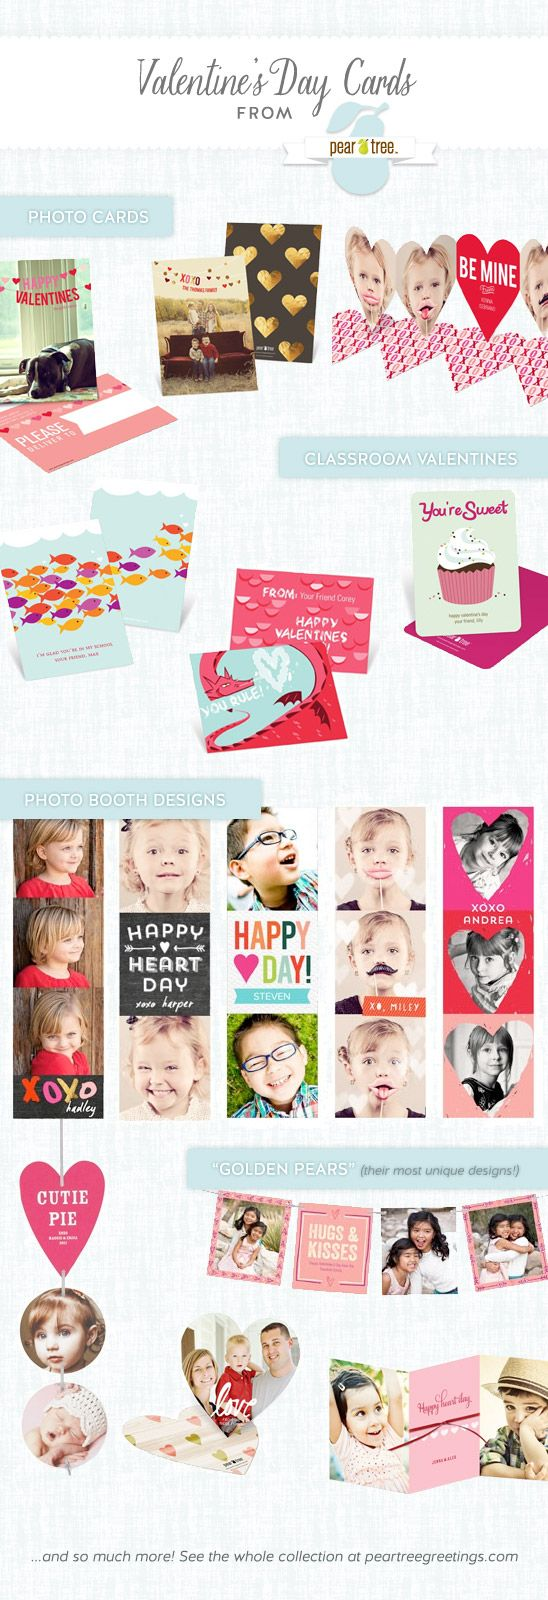 259 Best Cards Images On Pinterest Xmas Cards And Christmas Deco